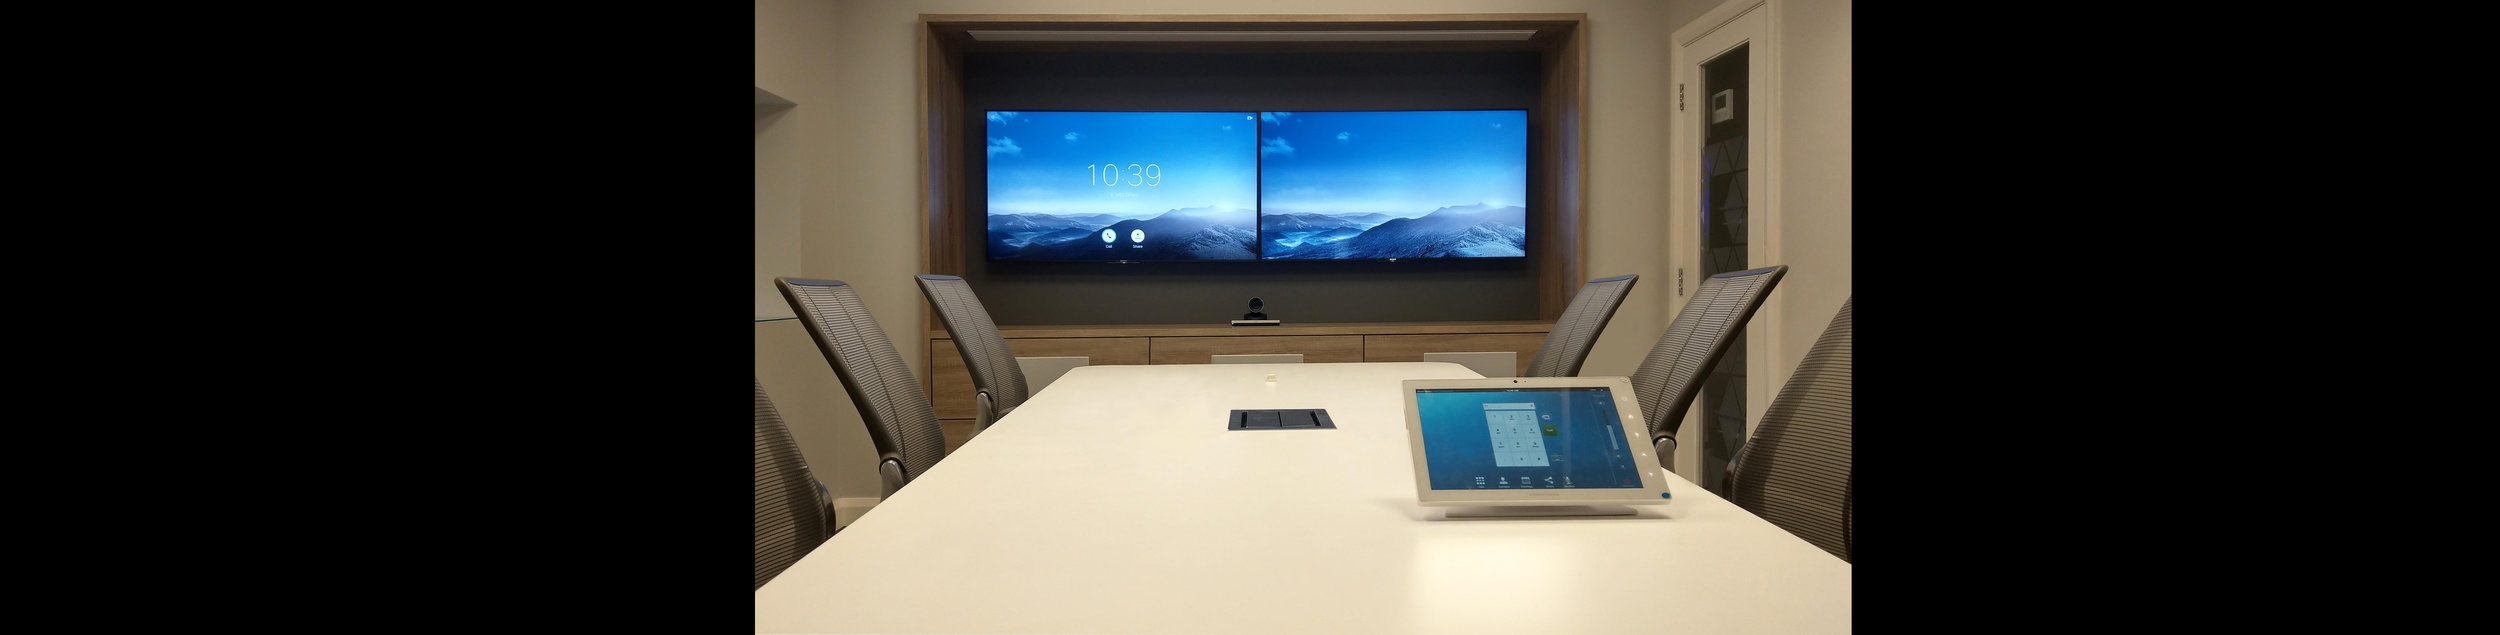 Crestron Telepresence Conference Room